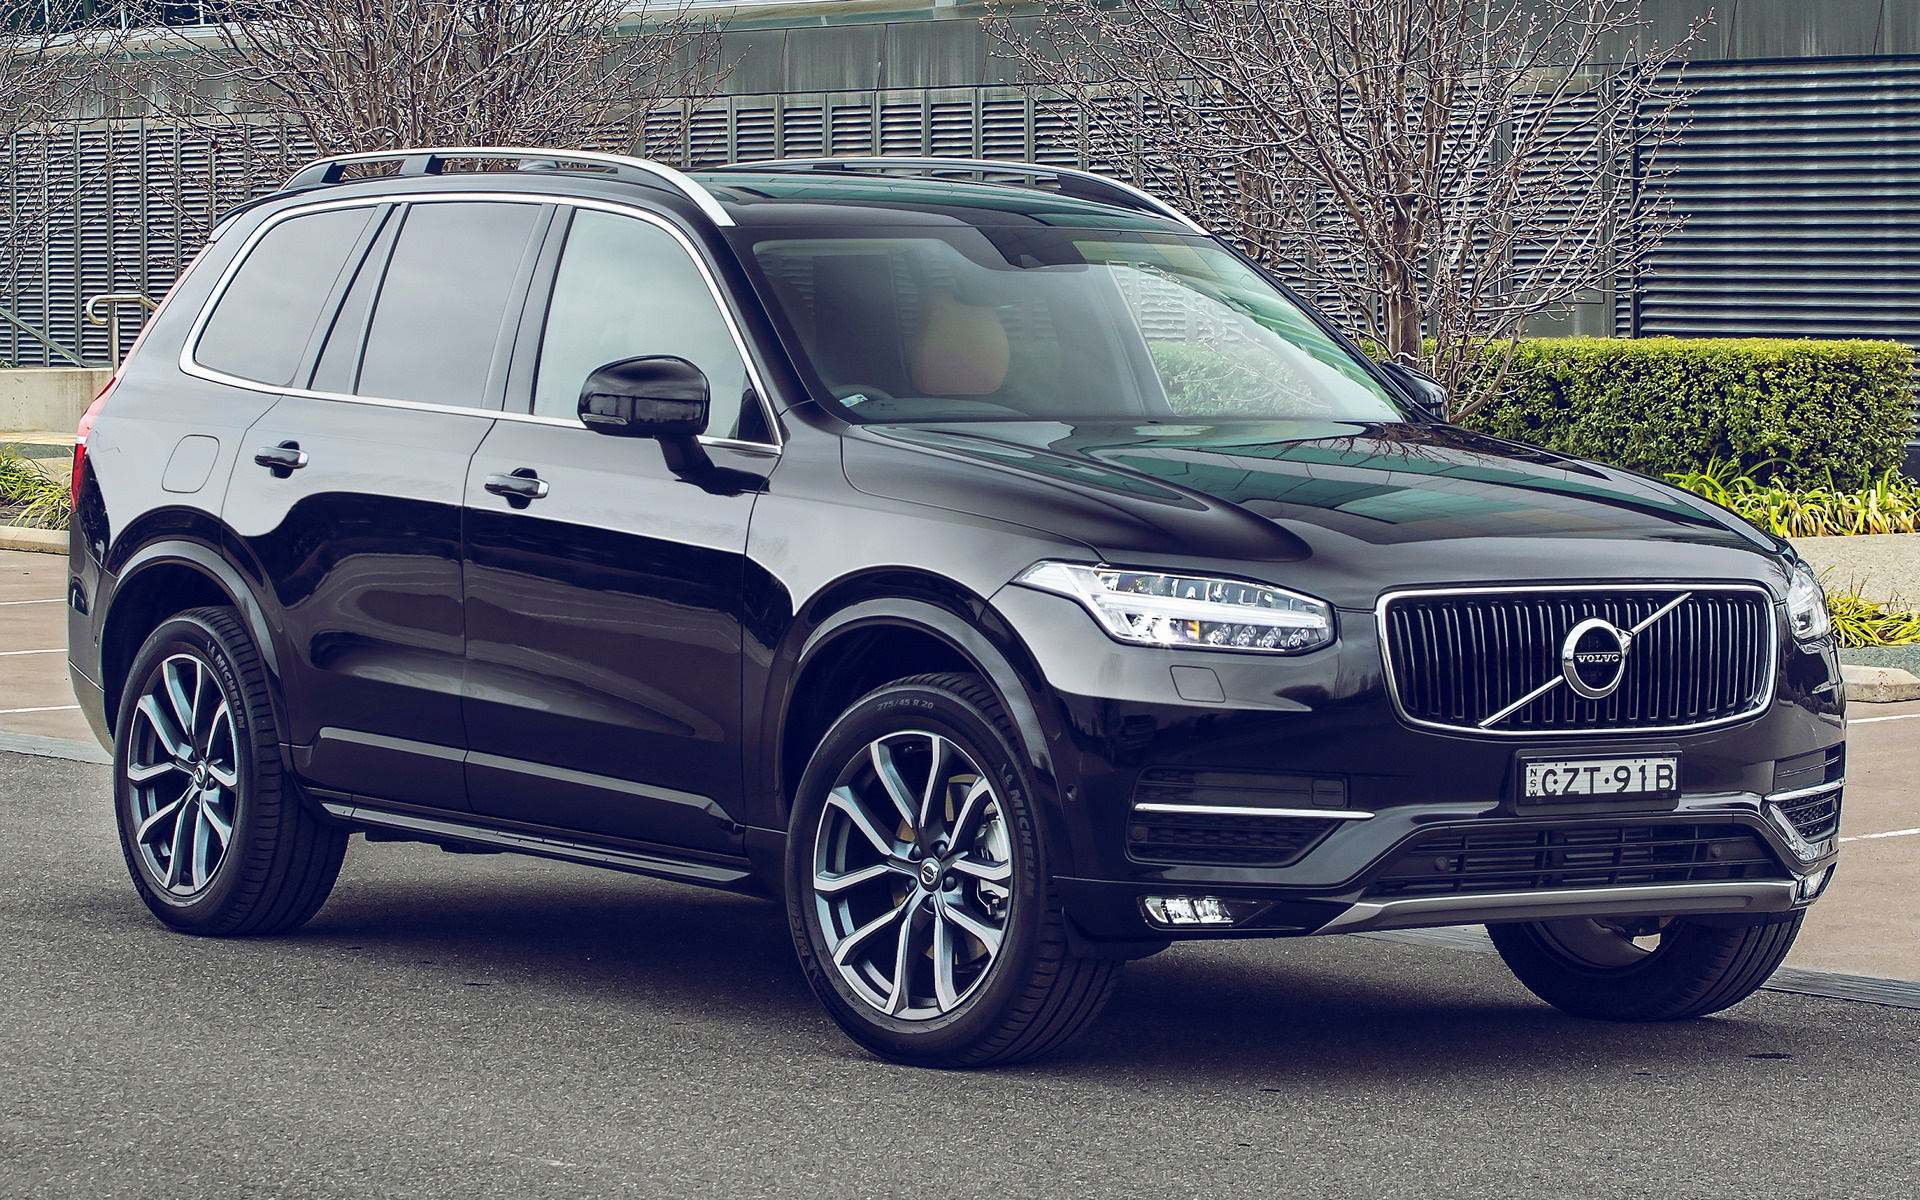 2015 Volvo XC90 Momentum (AU) - Wallpapers and HD Images | Car Pixel